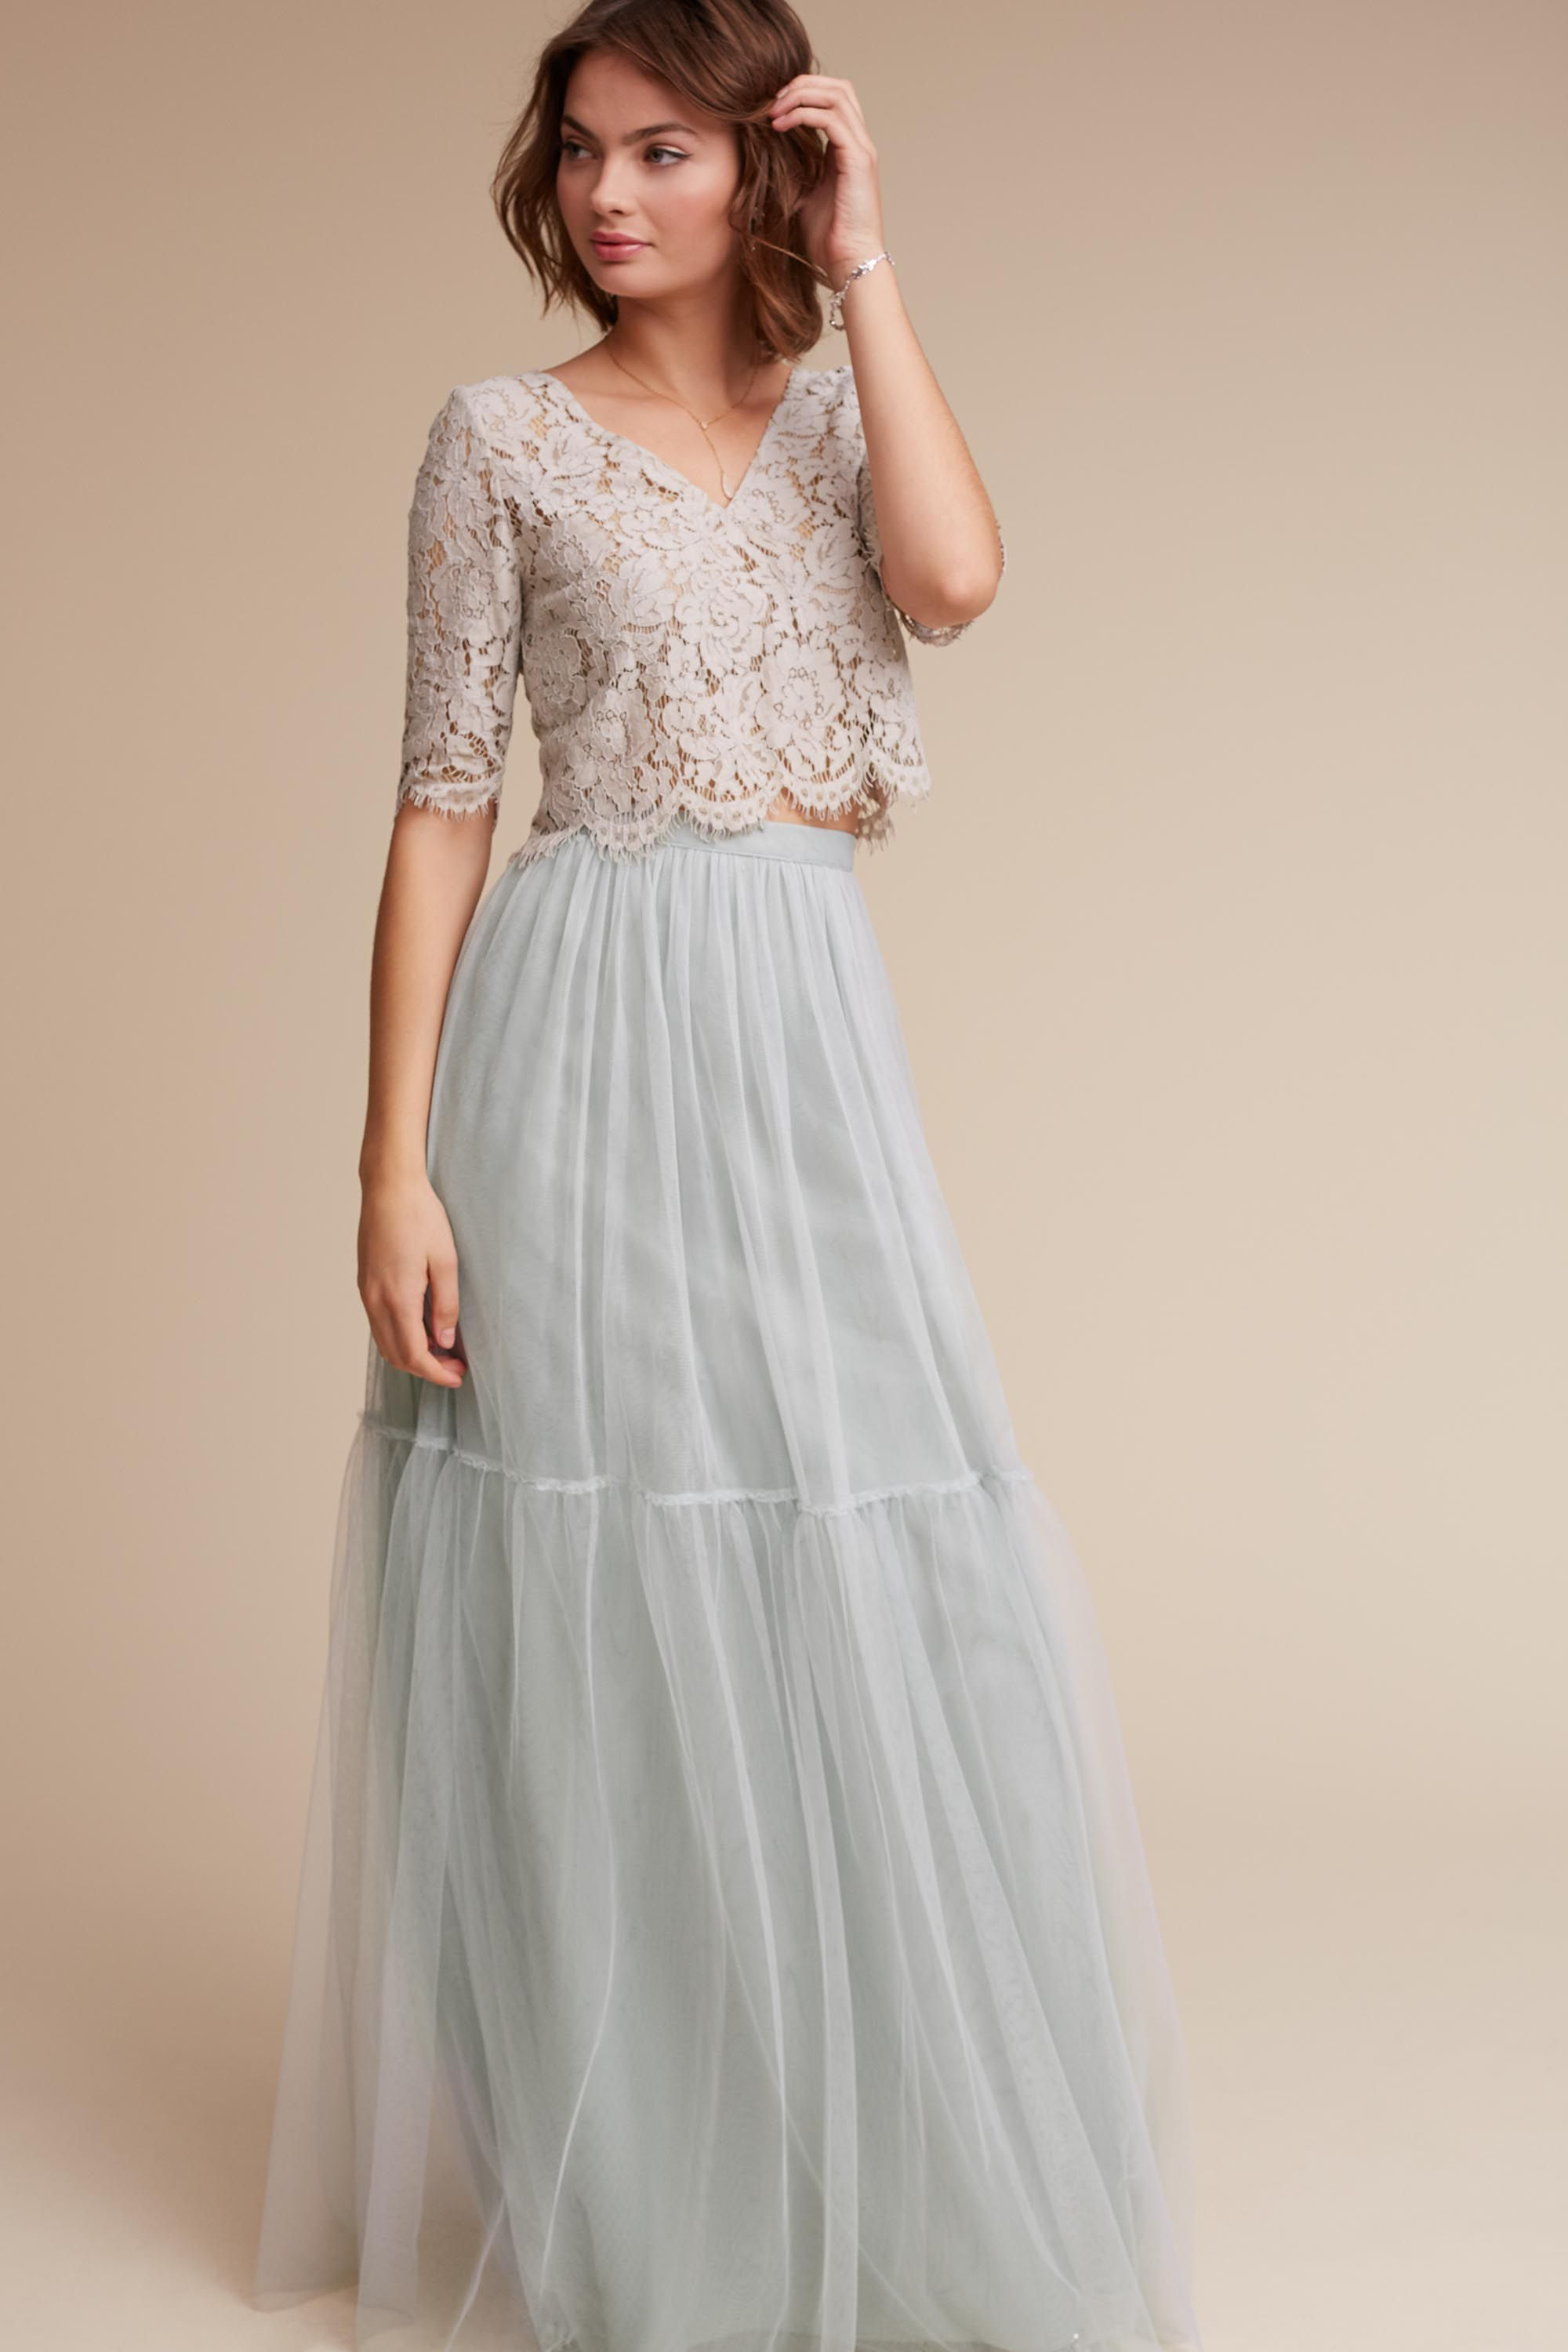 Libby Top & Blythe Skirt from @BHLDN (Top could be paired with any ...